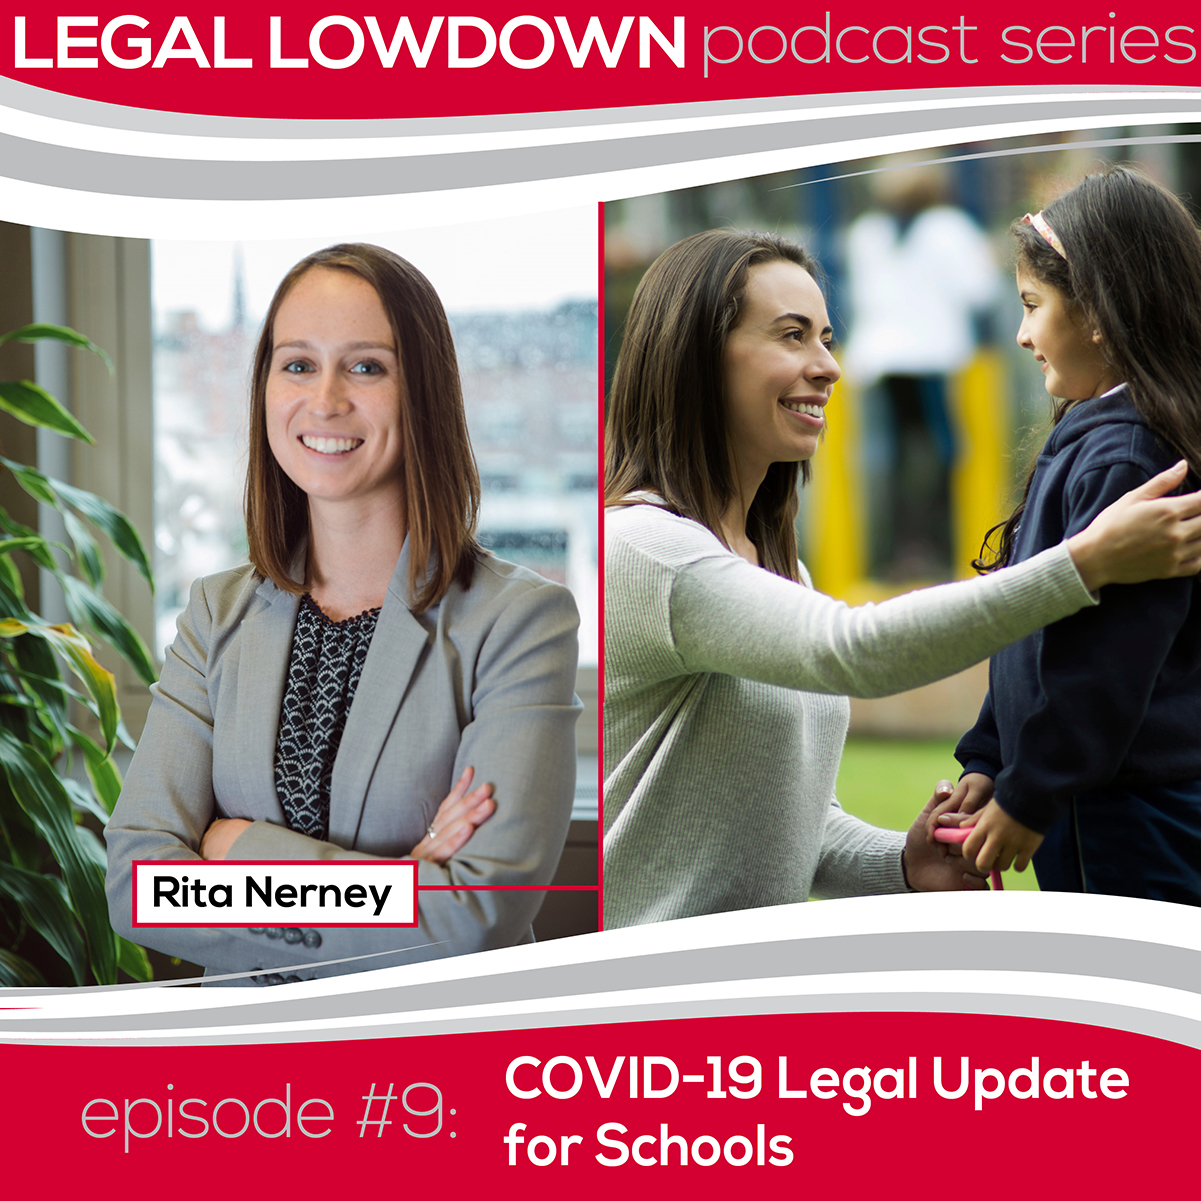 Legal Lowdown Podcast – Episode #9 – COVID-19 Legal Update for Schools